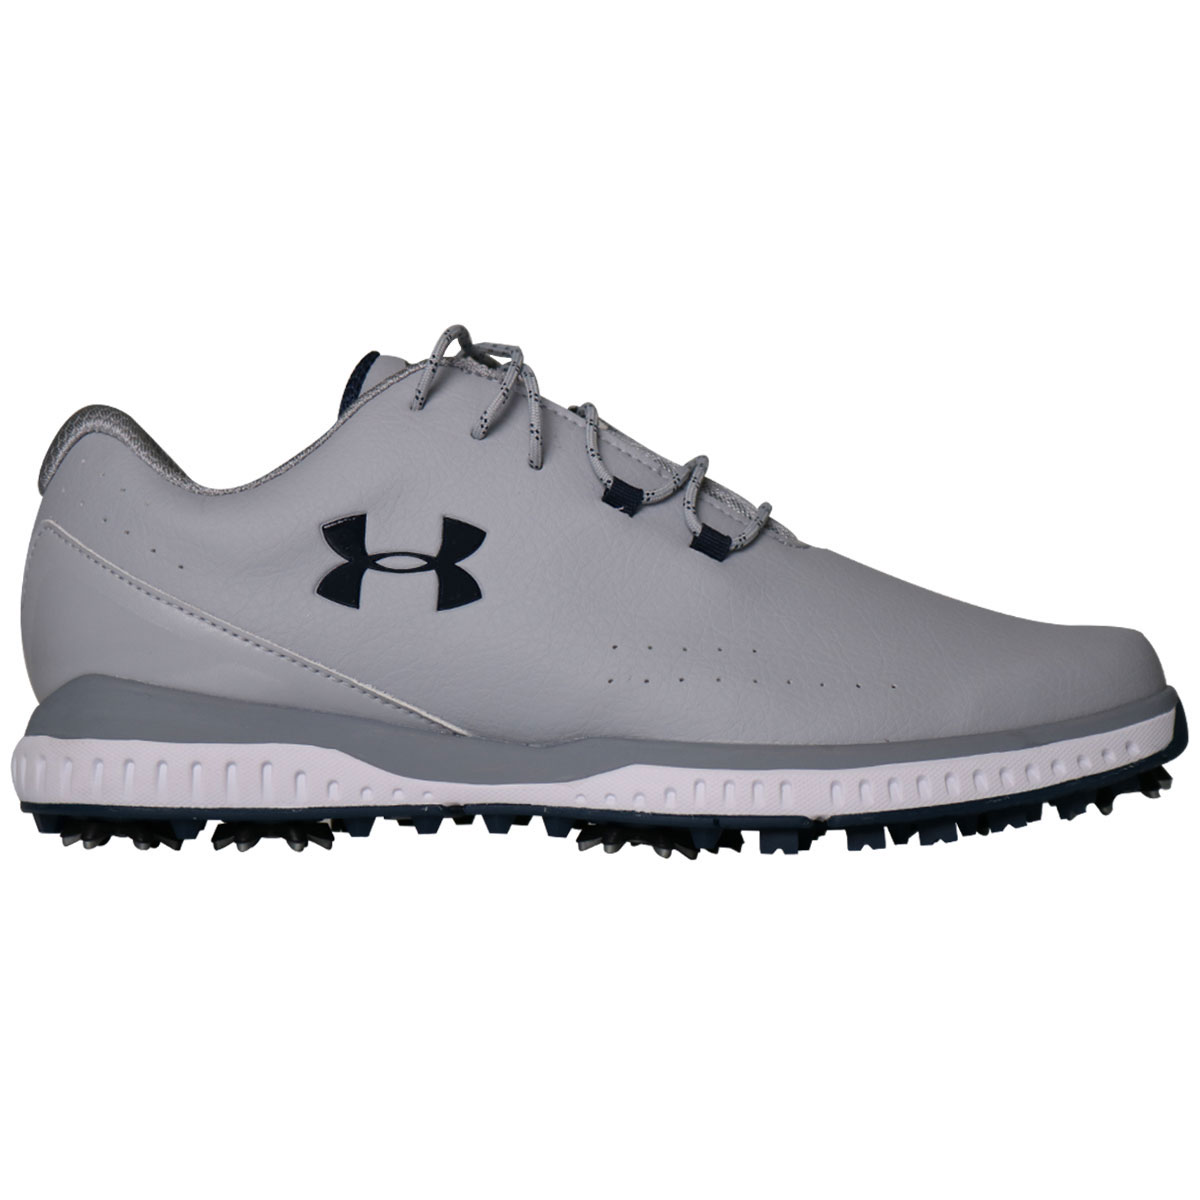 aafe64751 Under Armour Medal RST Shoes from american golf